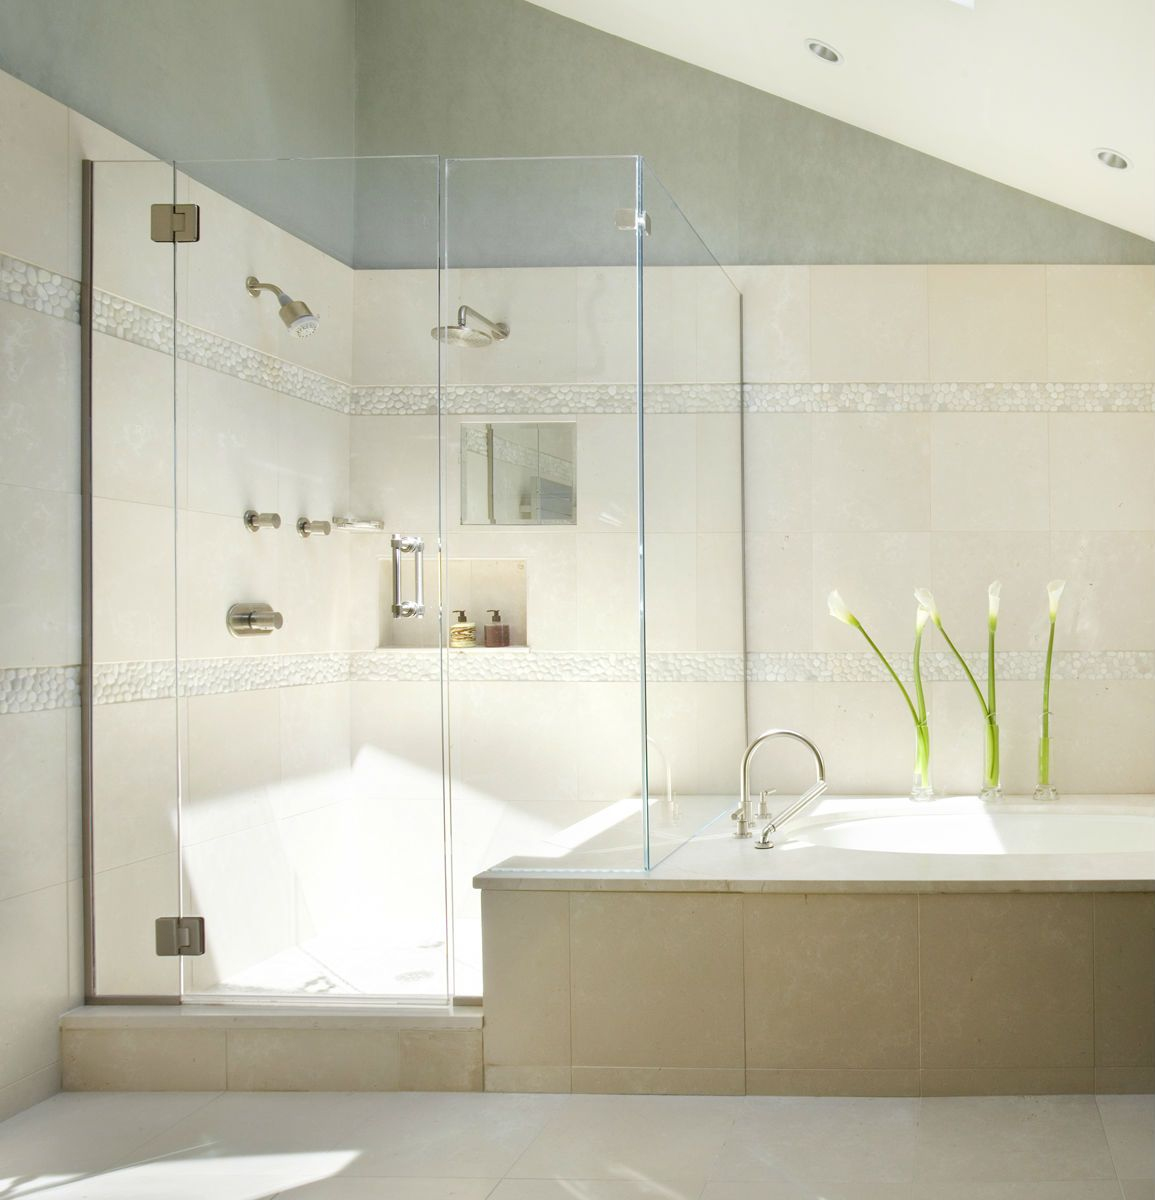 images showers with river rock | Menagerie of Materials: River ...